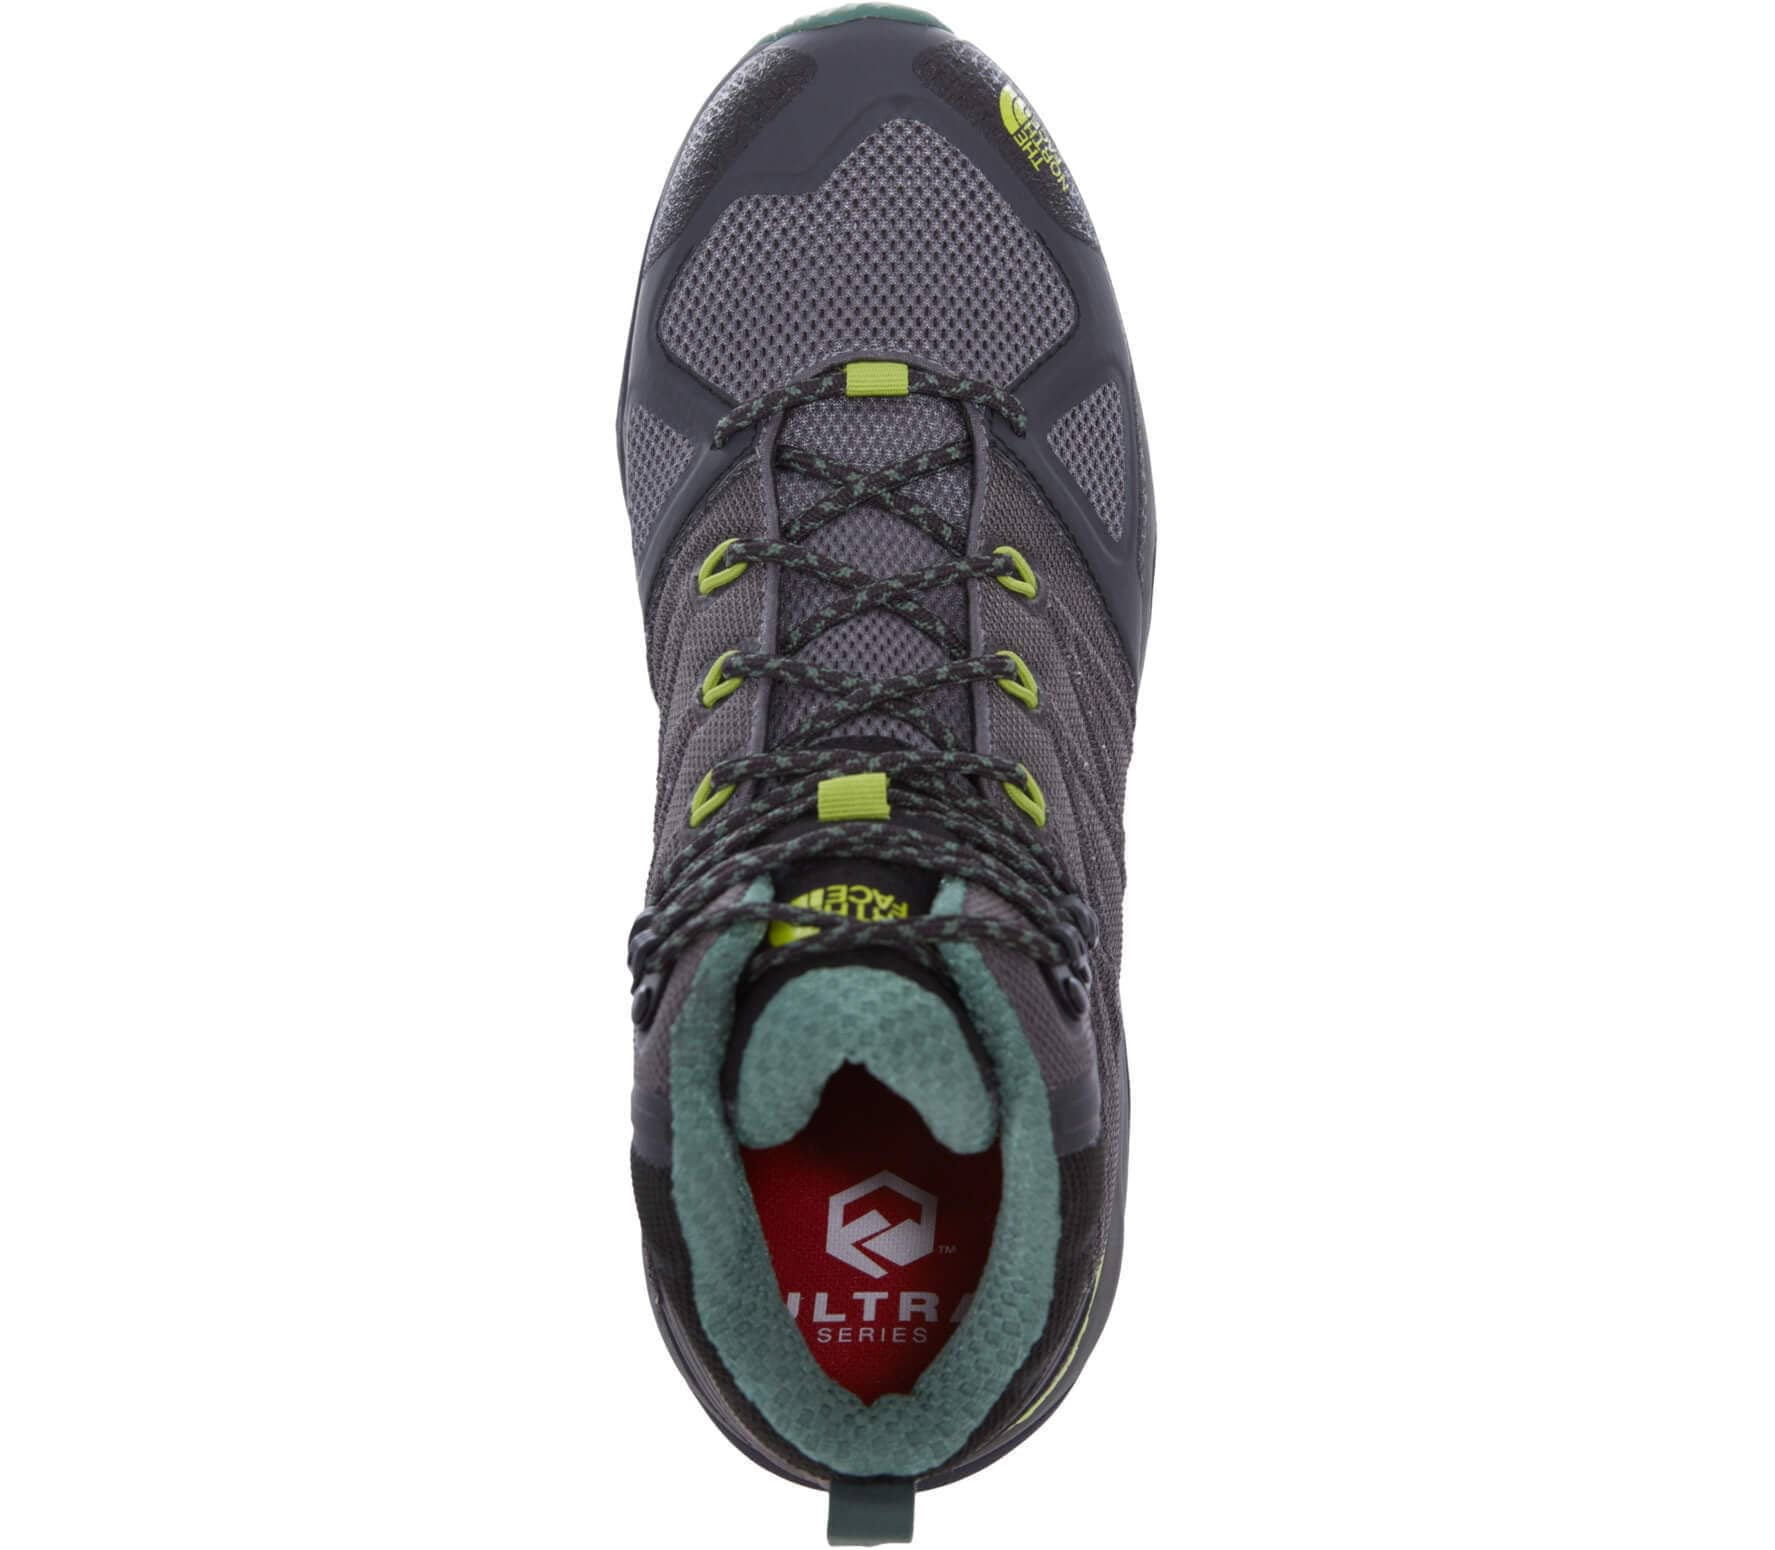 6b6e3d193 The North Face Ultra Fastpack II Mid GTX men's hiking shoes Men silver